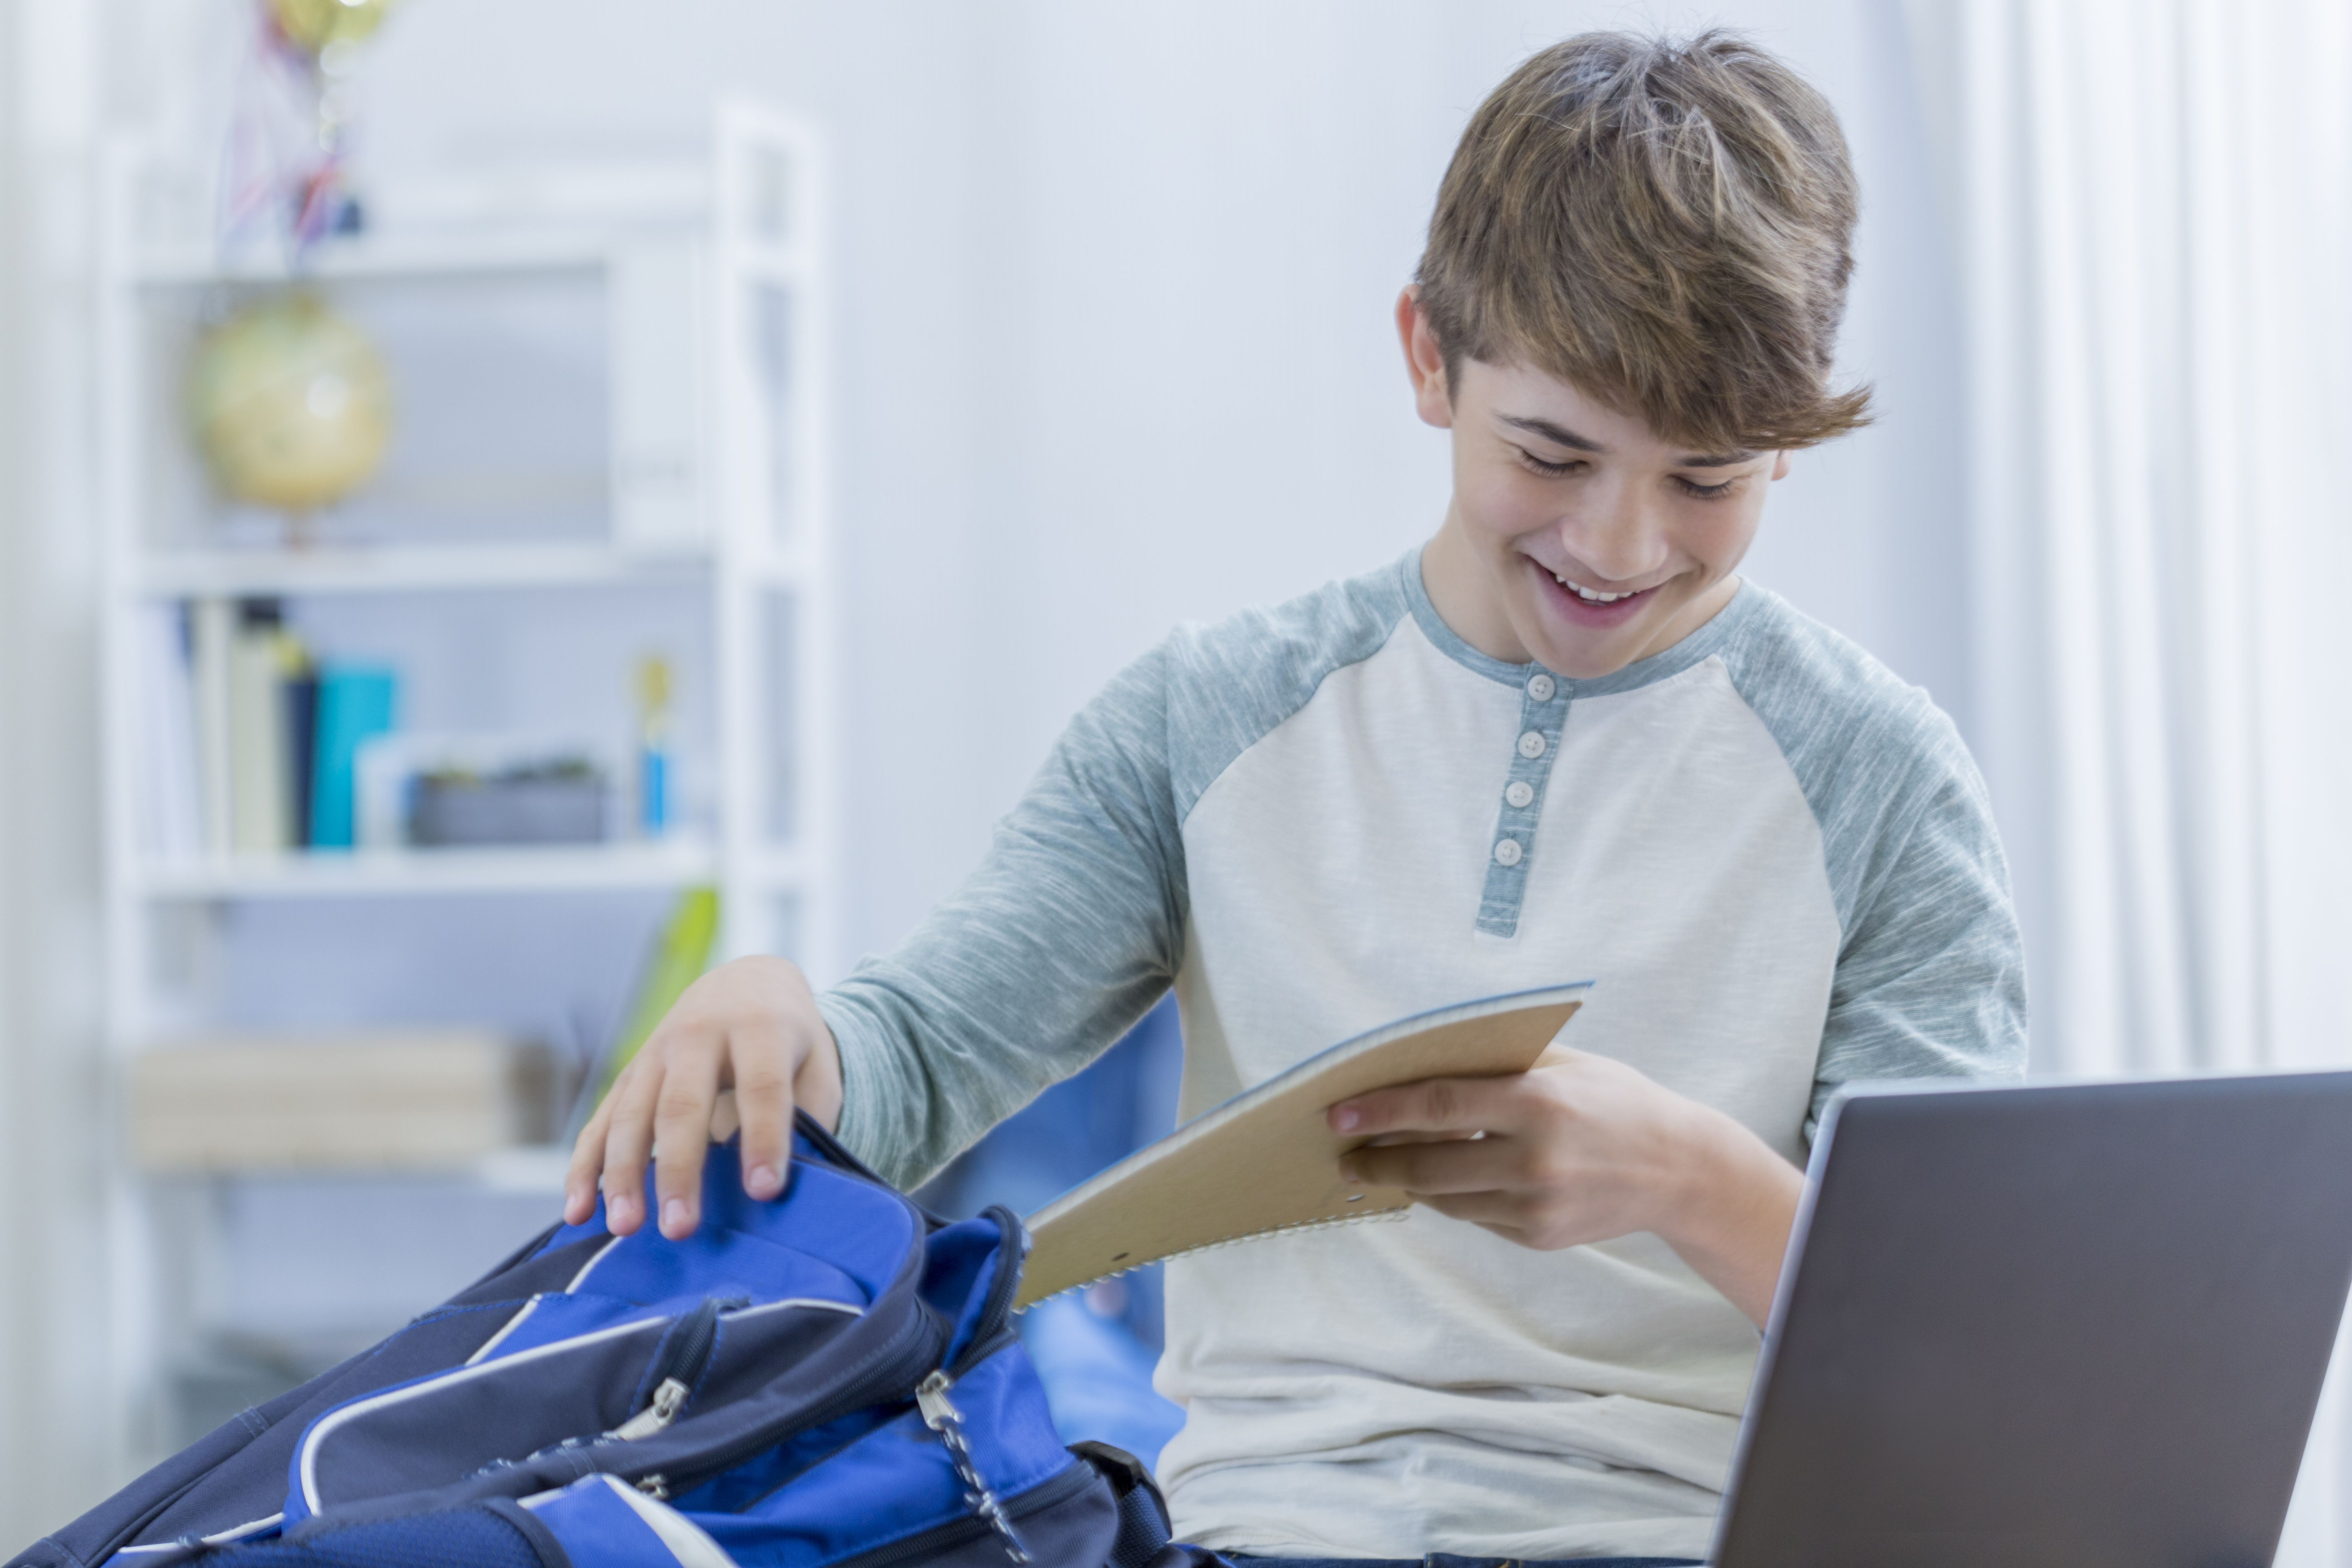 Boy packing a backpack